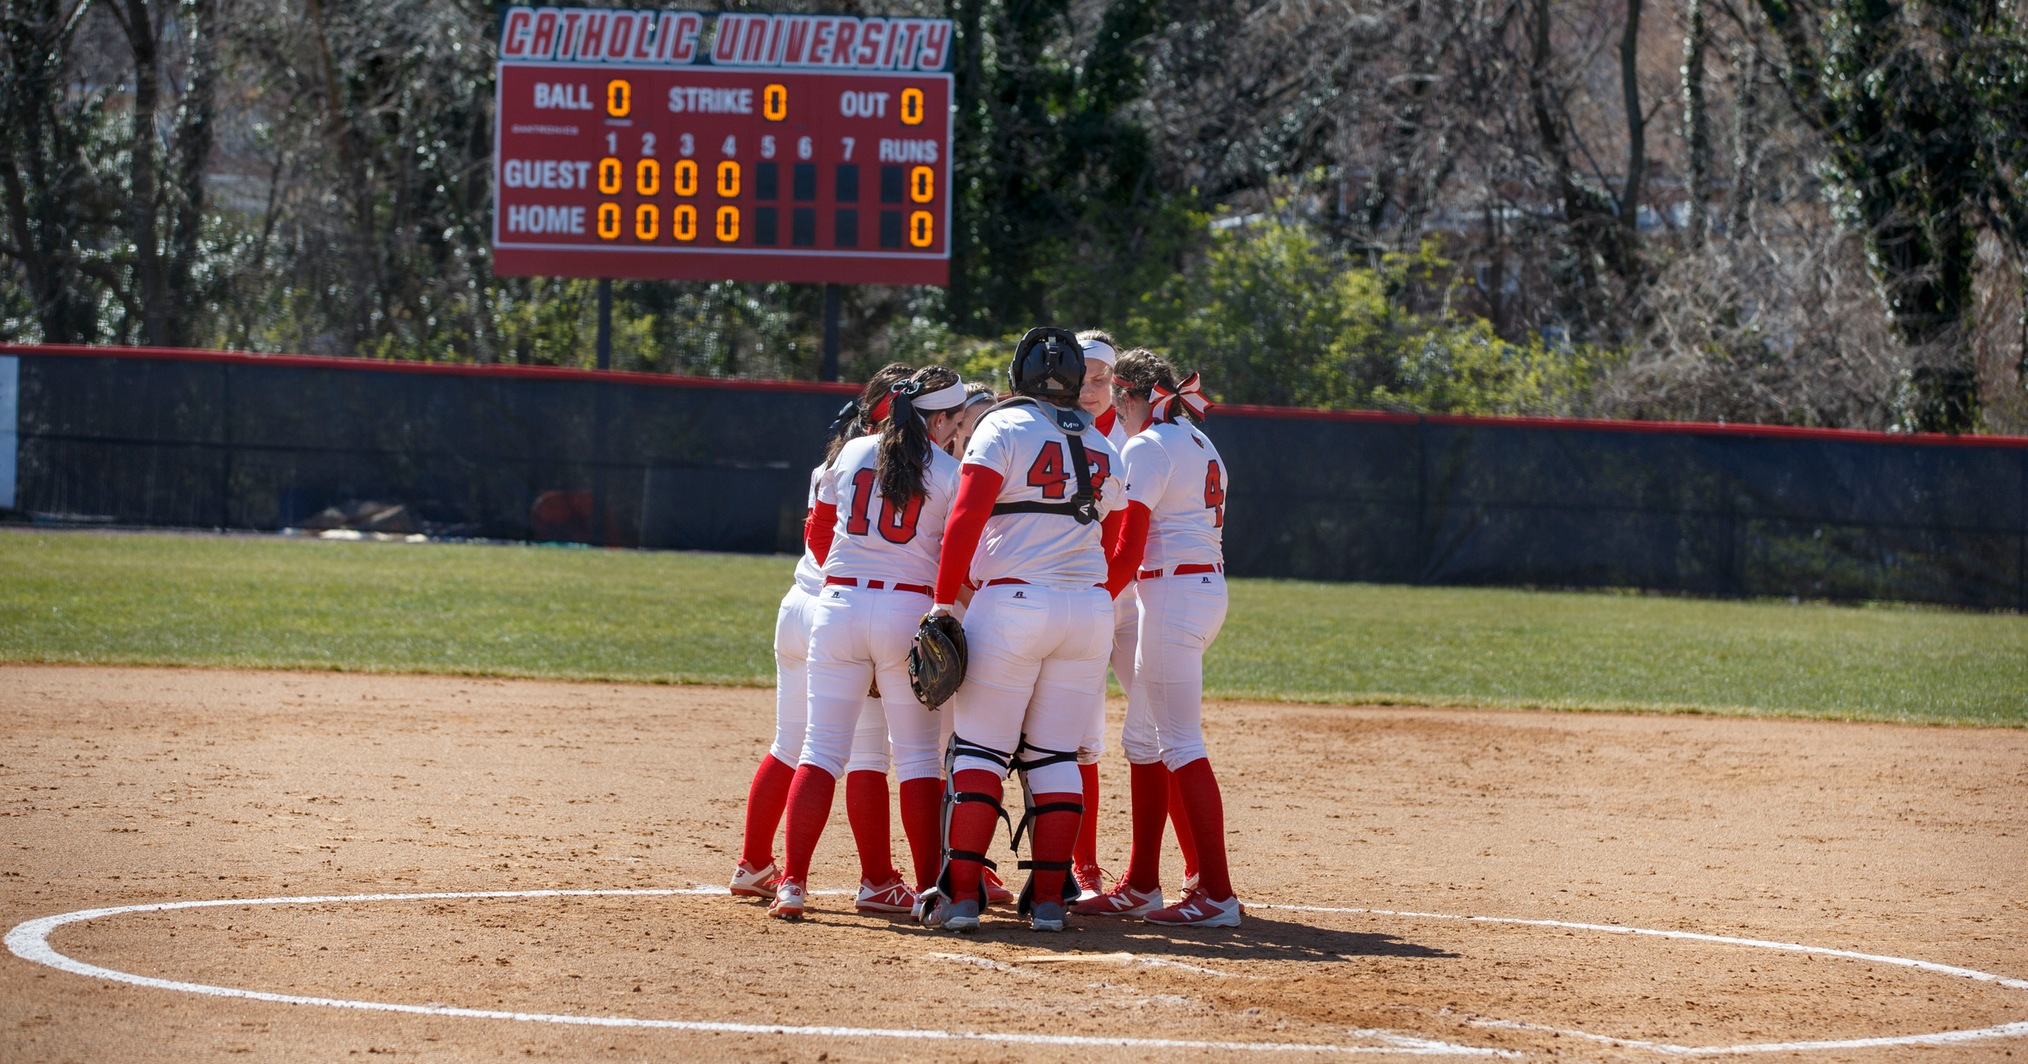 McConkey Announces Cardinal Softball Winter Clinics